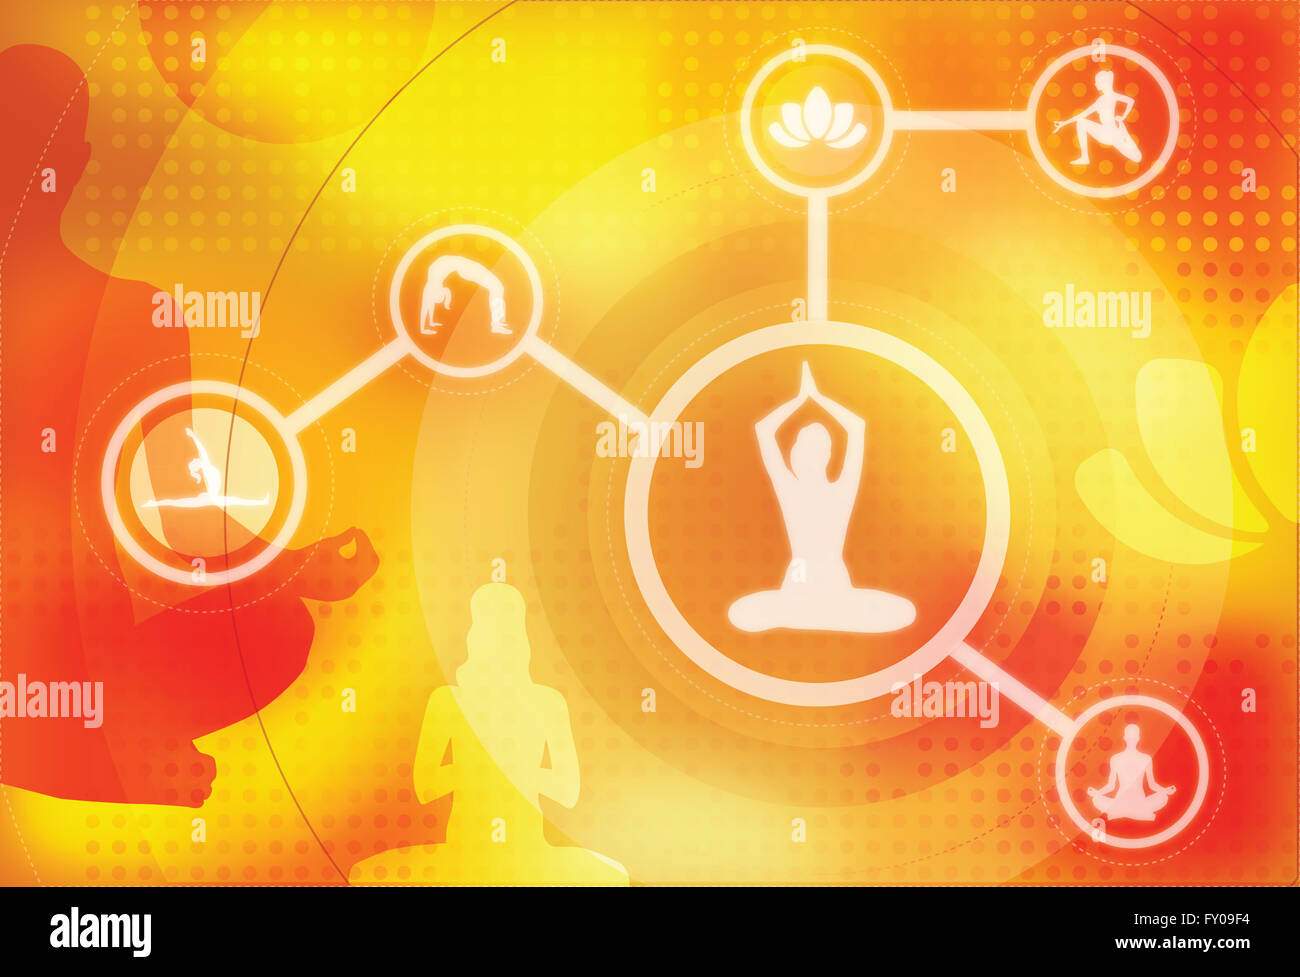 Illustrative of multiple image of different yoga poses - Stock Image